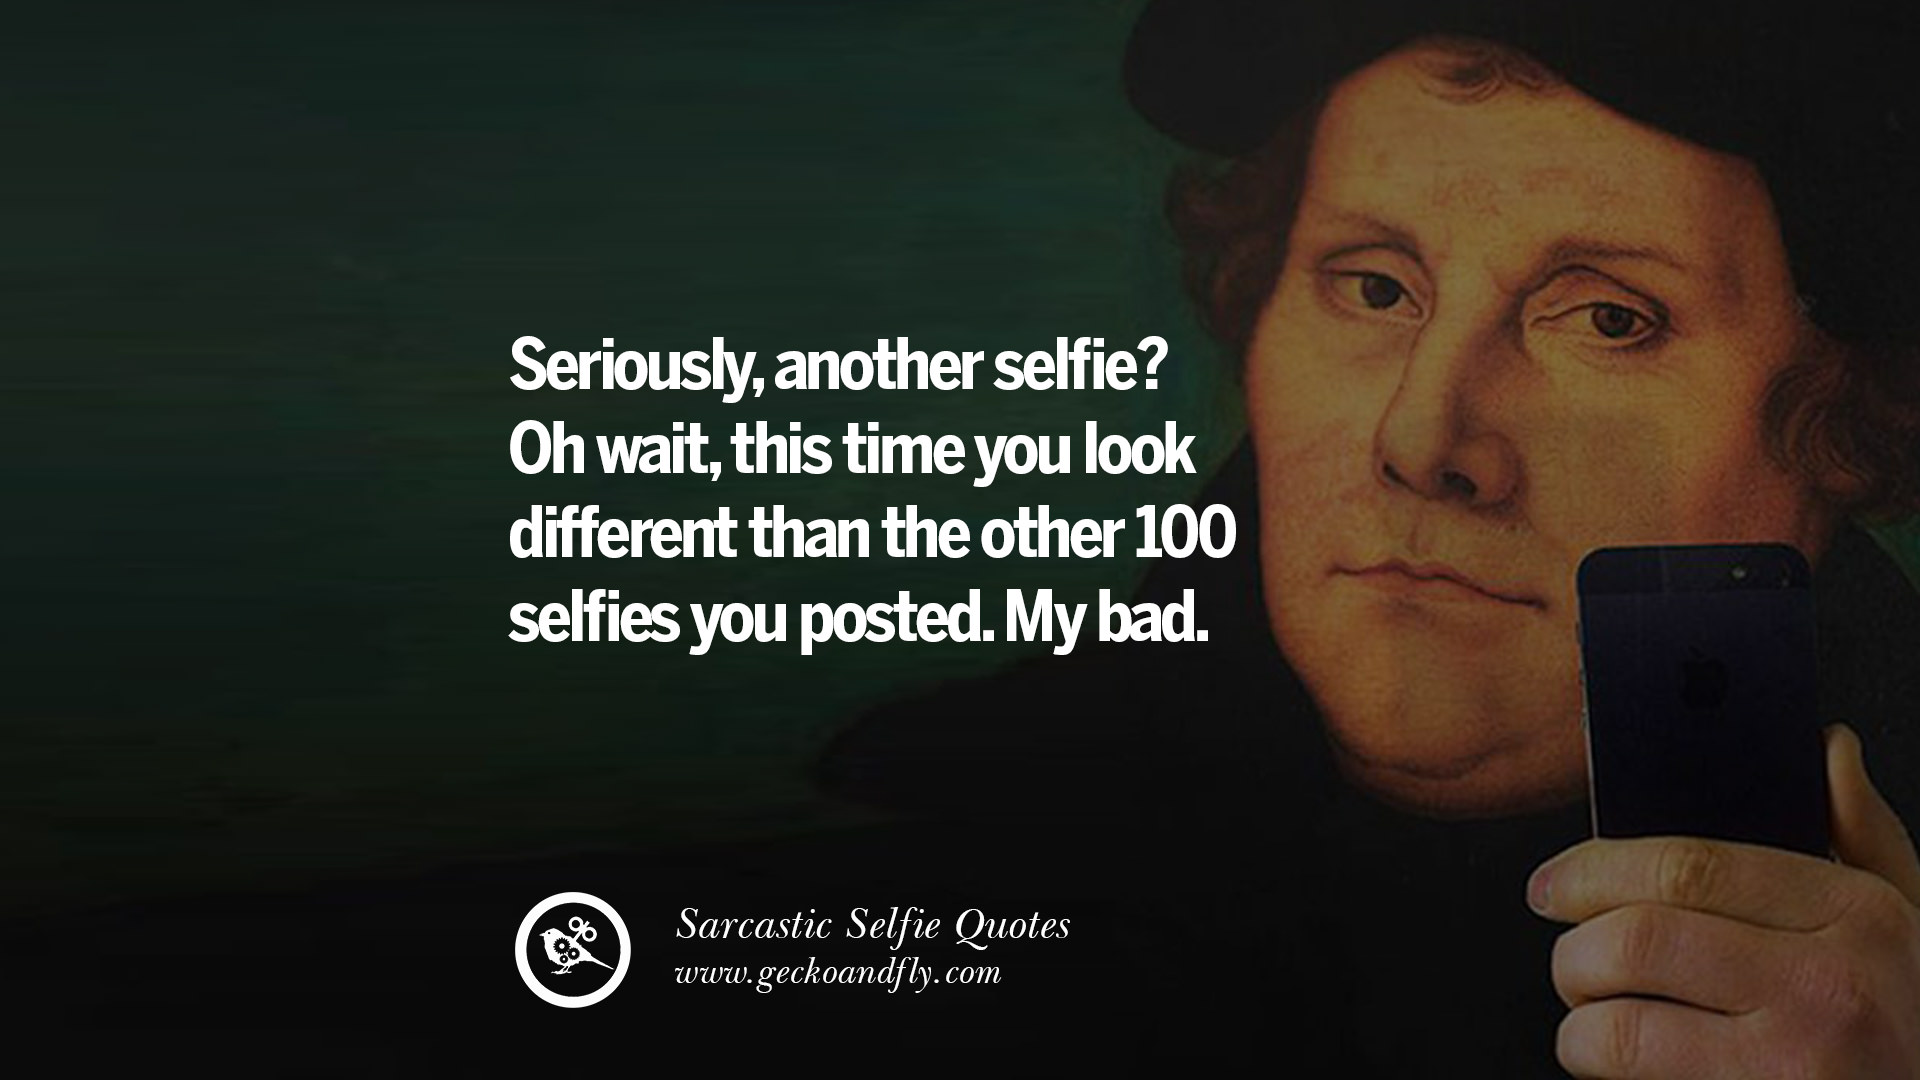 Quotes For Selfies 30 Sarcastic Antiselfie Quotes For Facebook And Instagram Friends